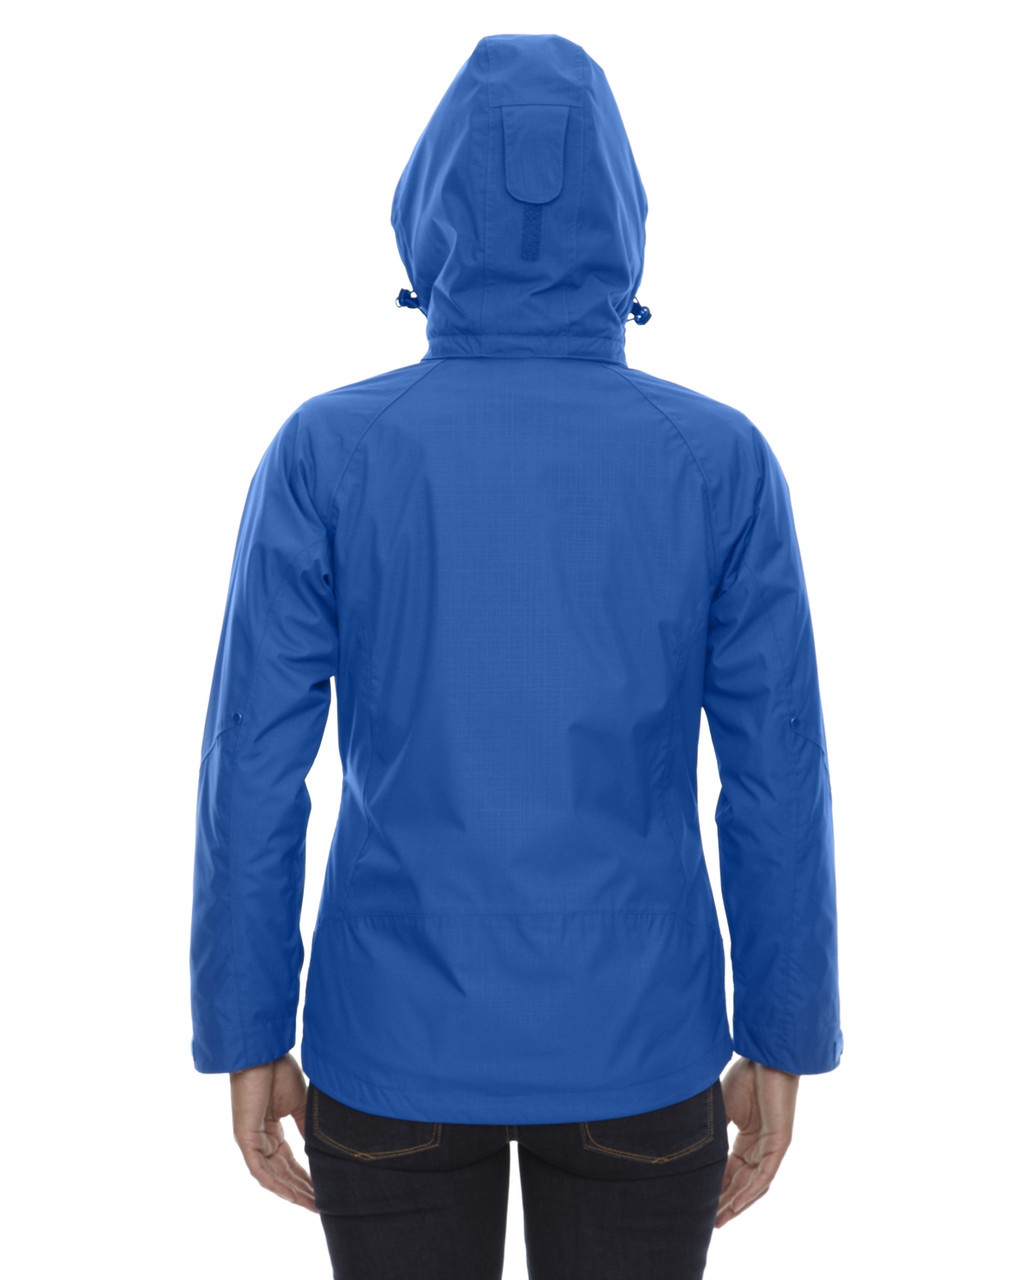 Nautical Blue - back 78178 North End Caprice 3-in-1 Jacket with Soft Shell Liner | Blankclothing.ca